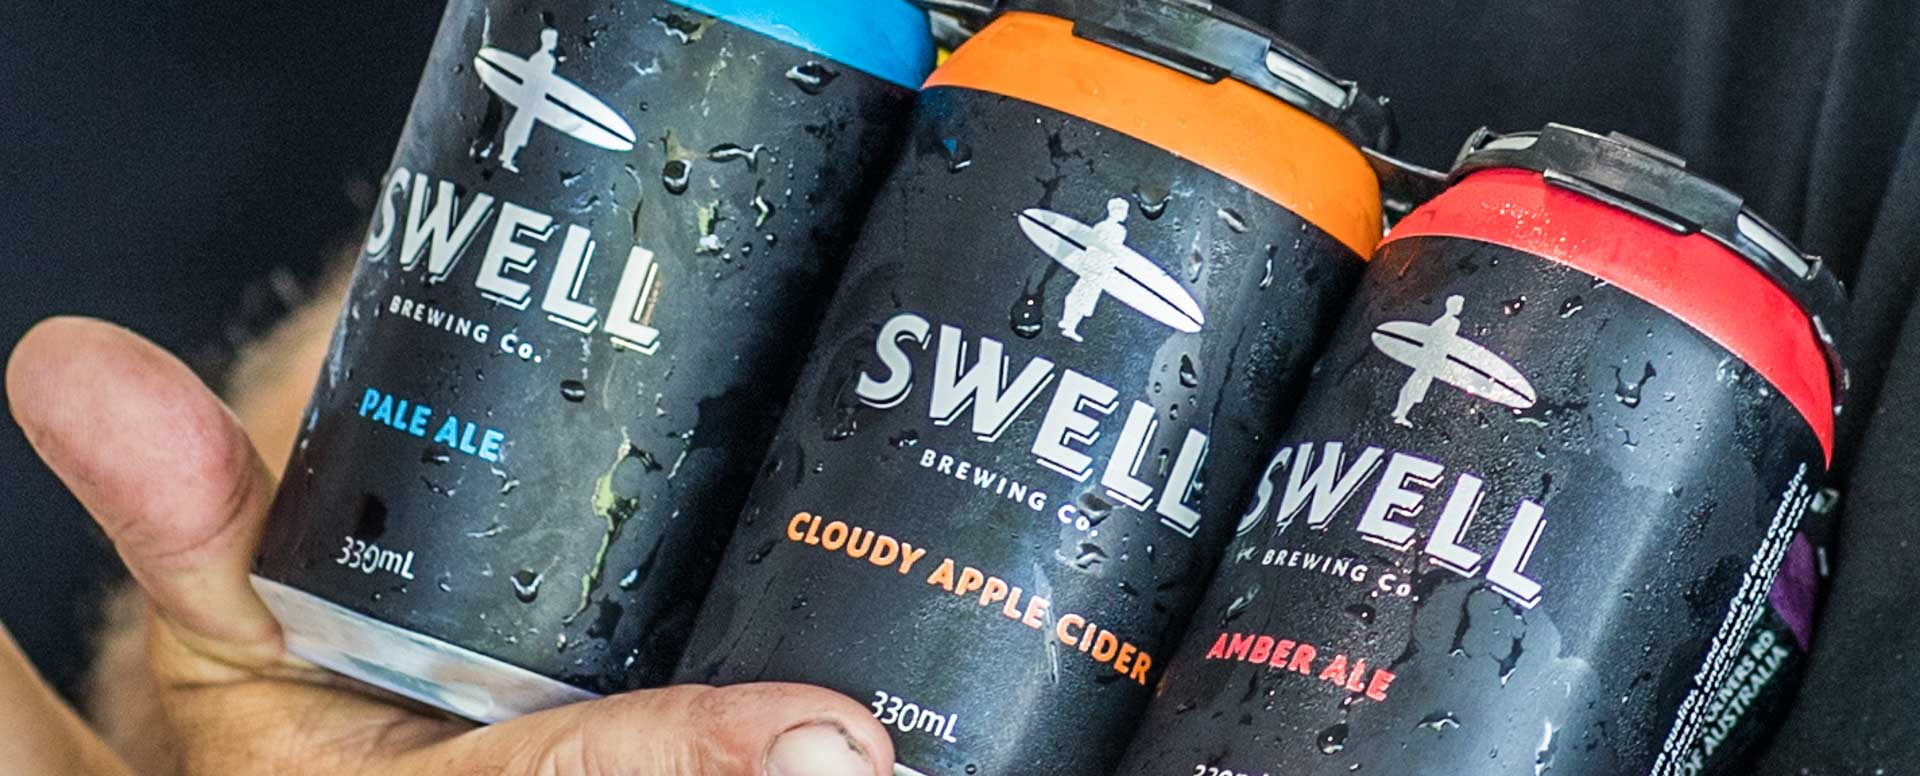 SWELL Brewing Co. Commercial Photography Adelaide.